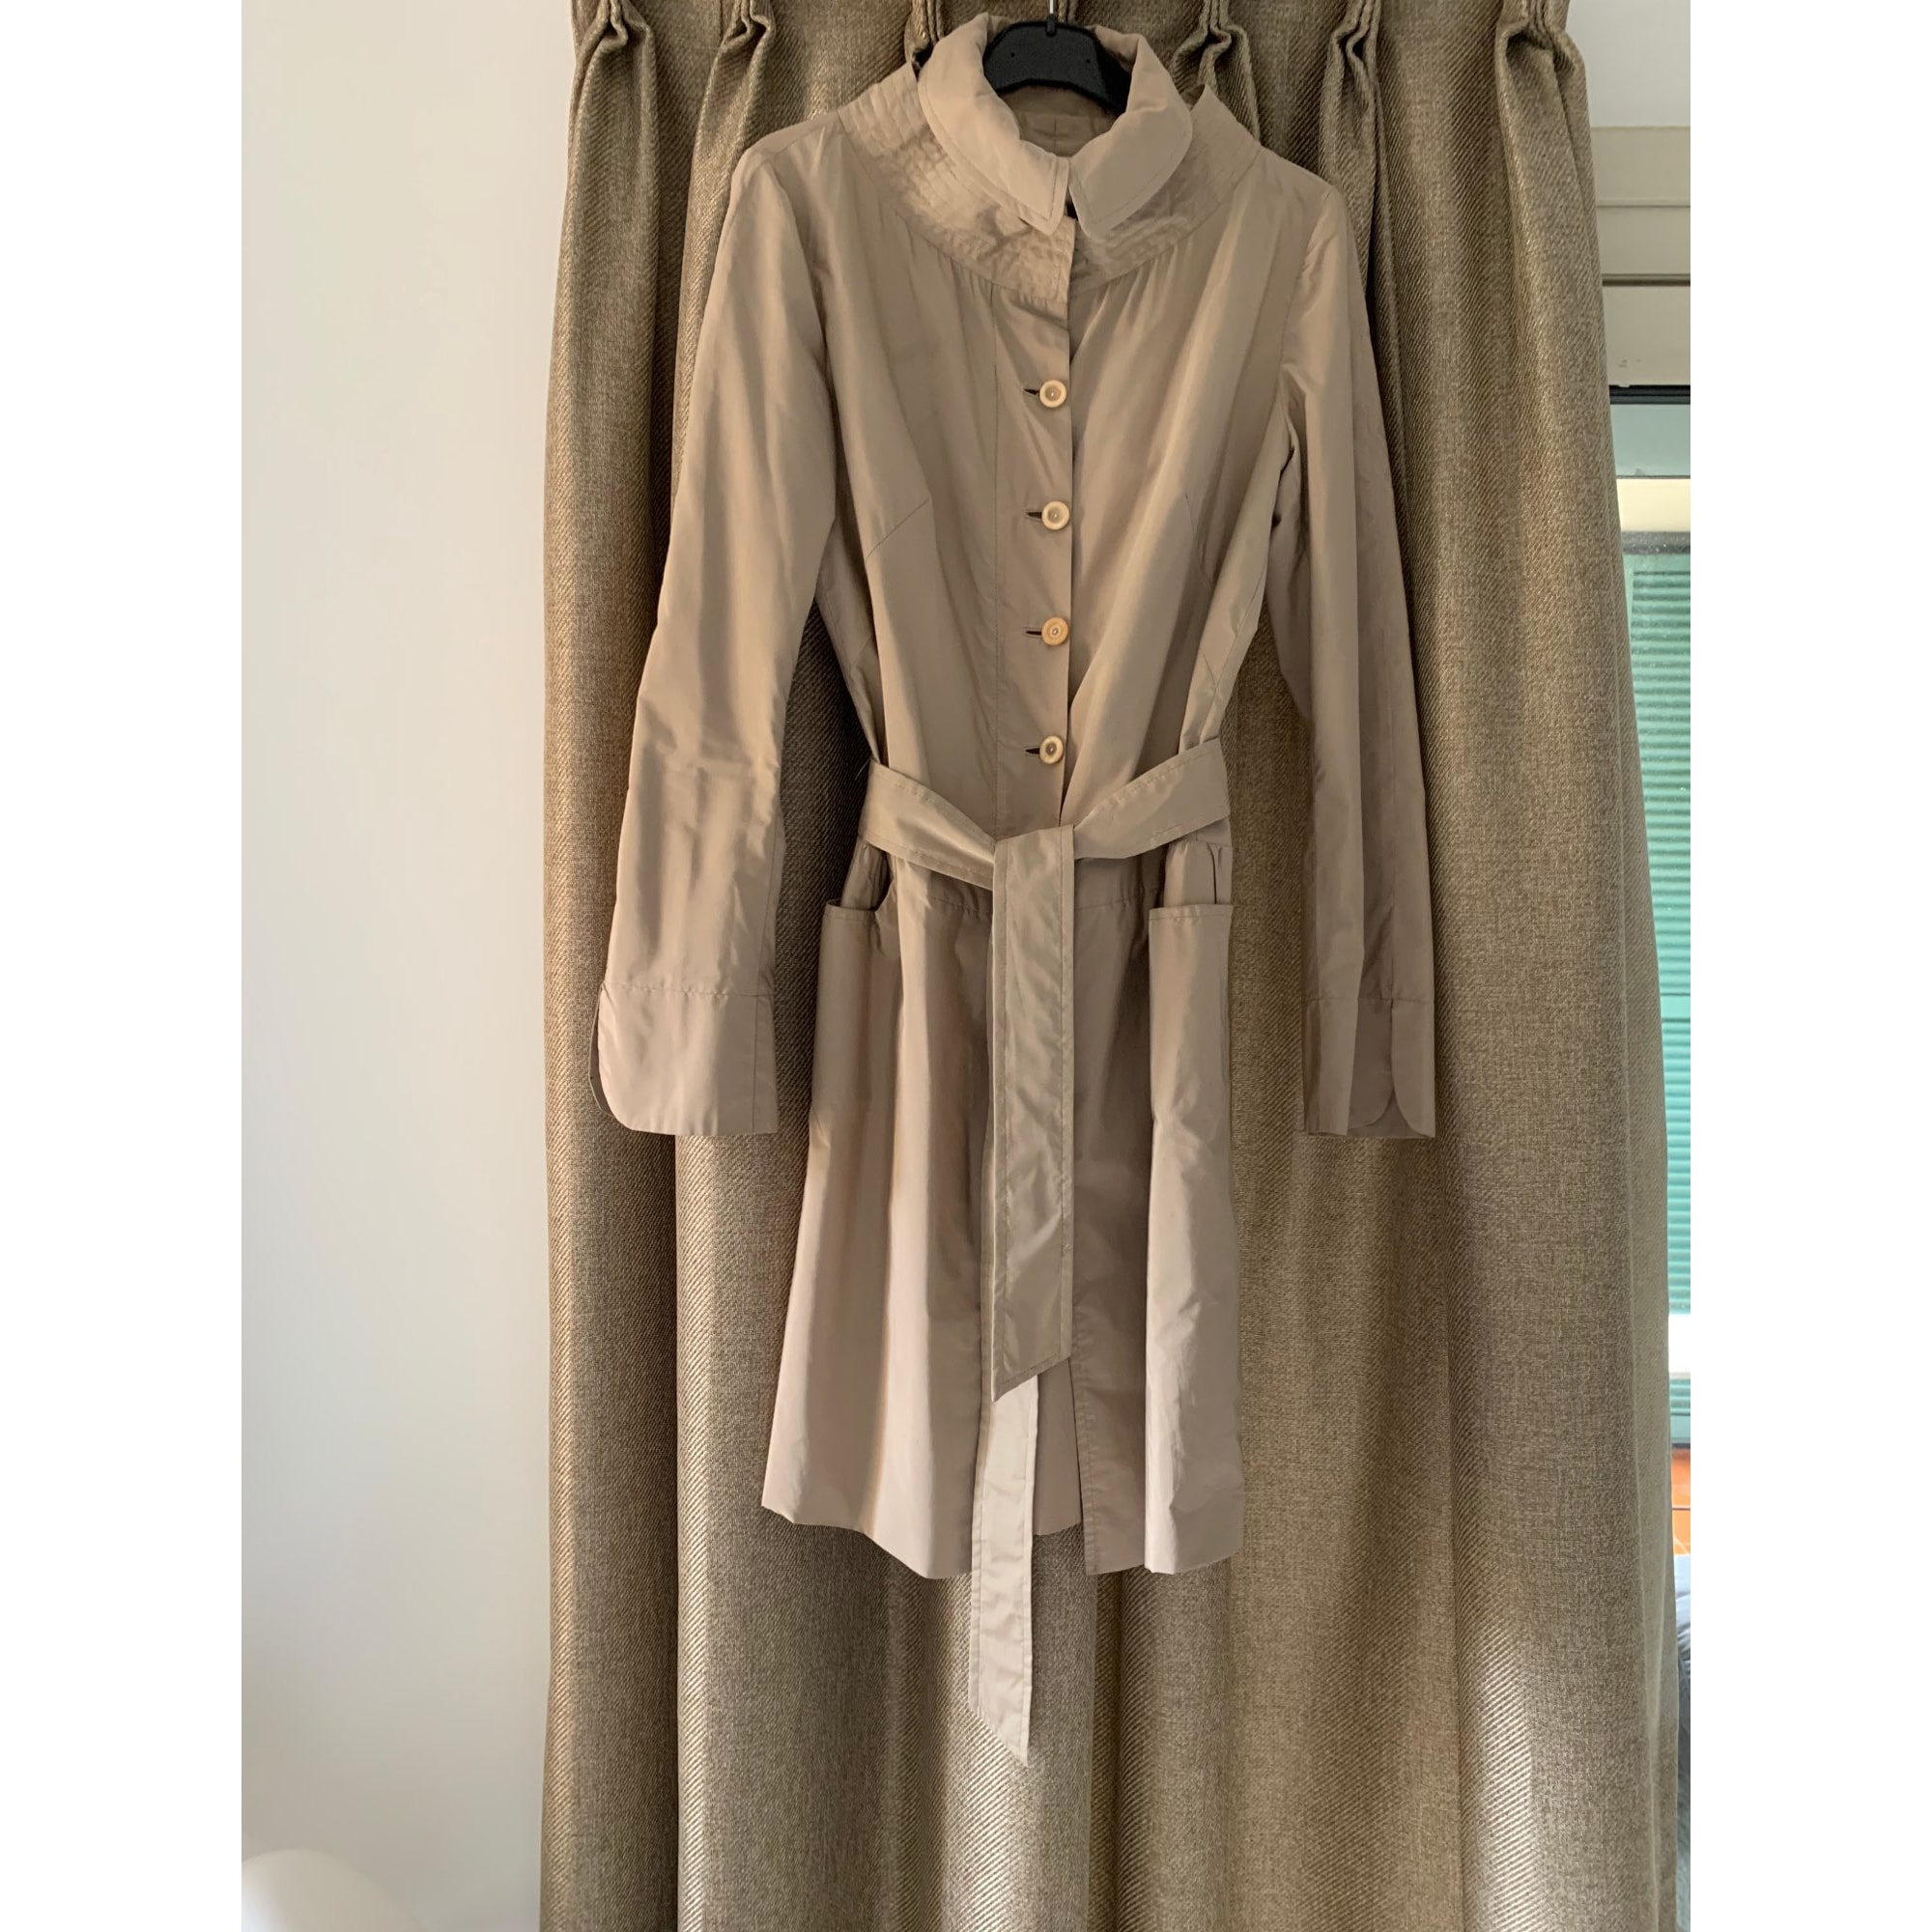 Imperméable, trench ERMANNO SCERVINO Beige, camel